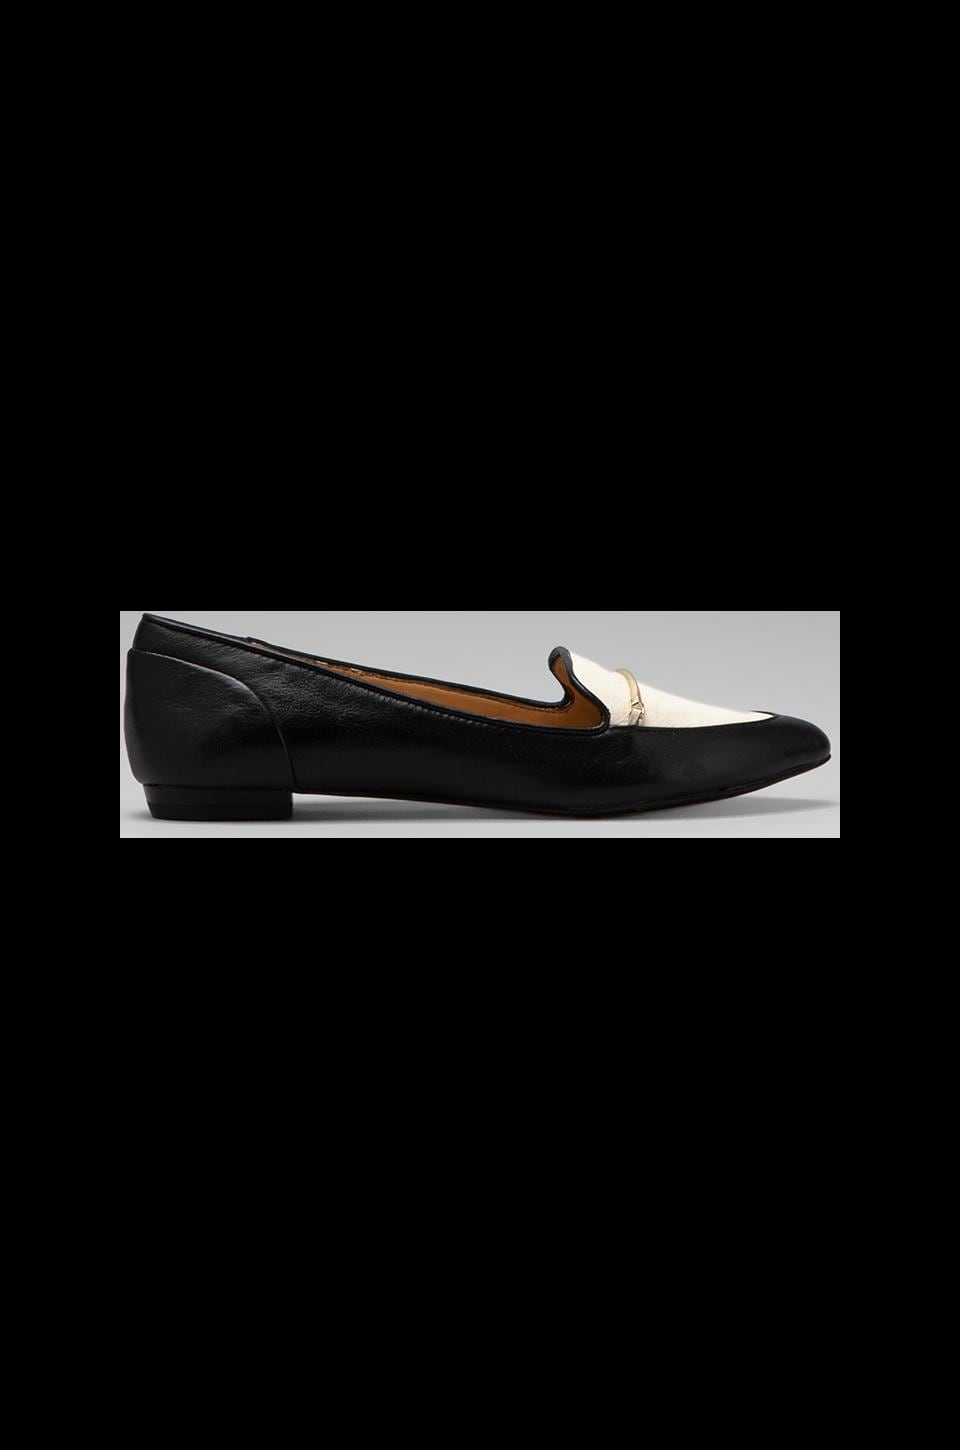 Dolce Vita Giya Loafer in Black/White